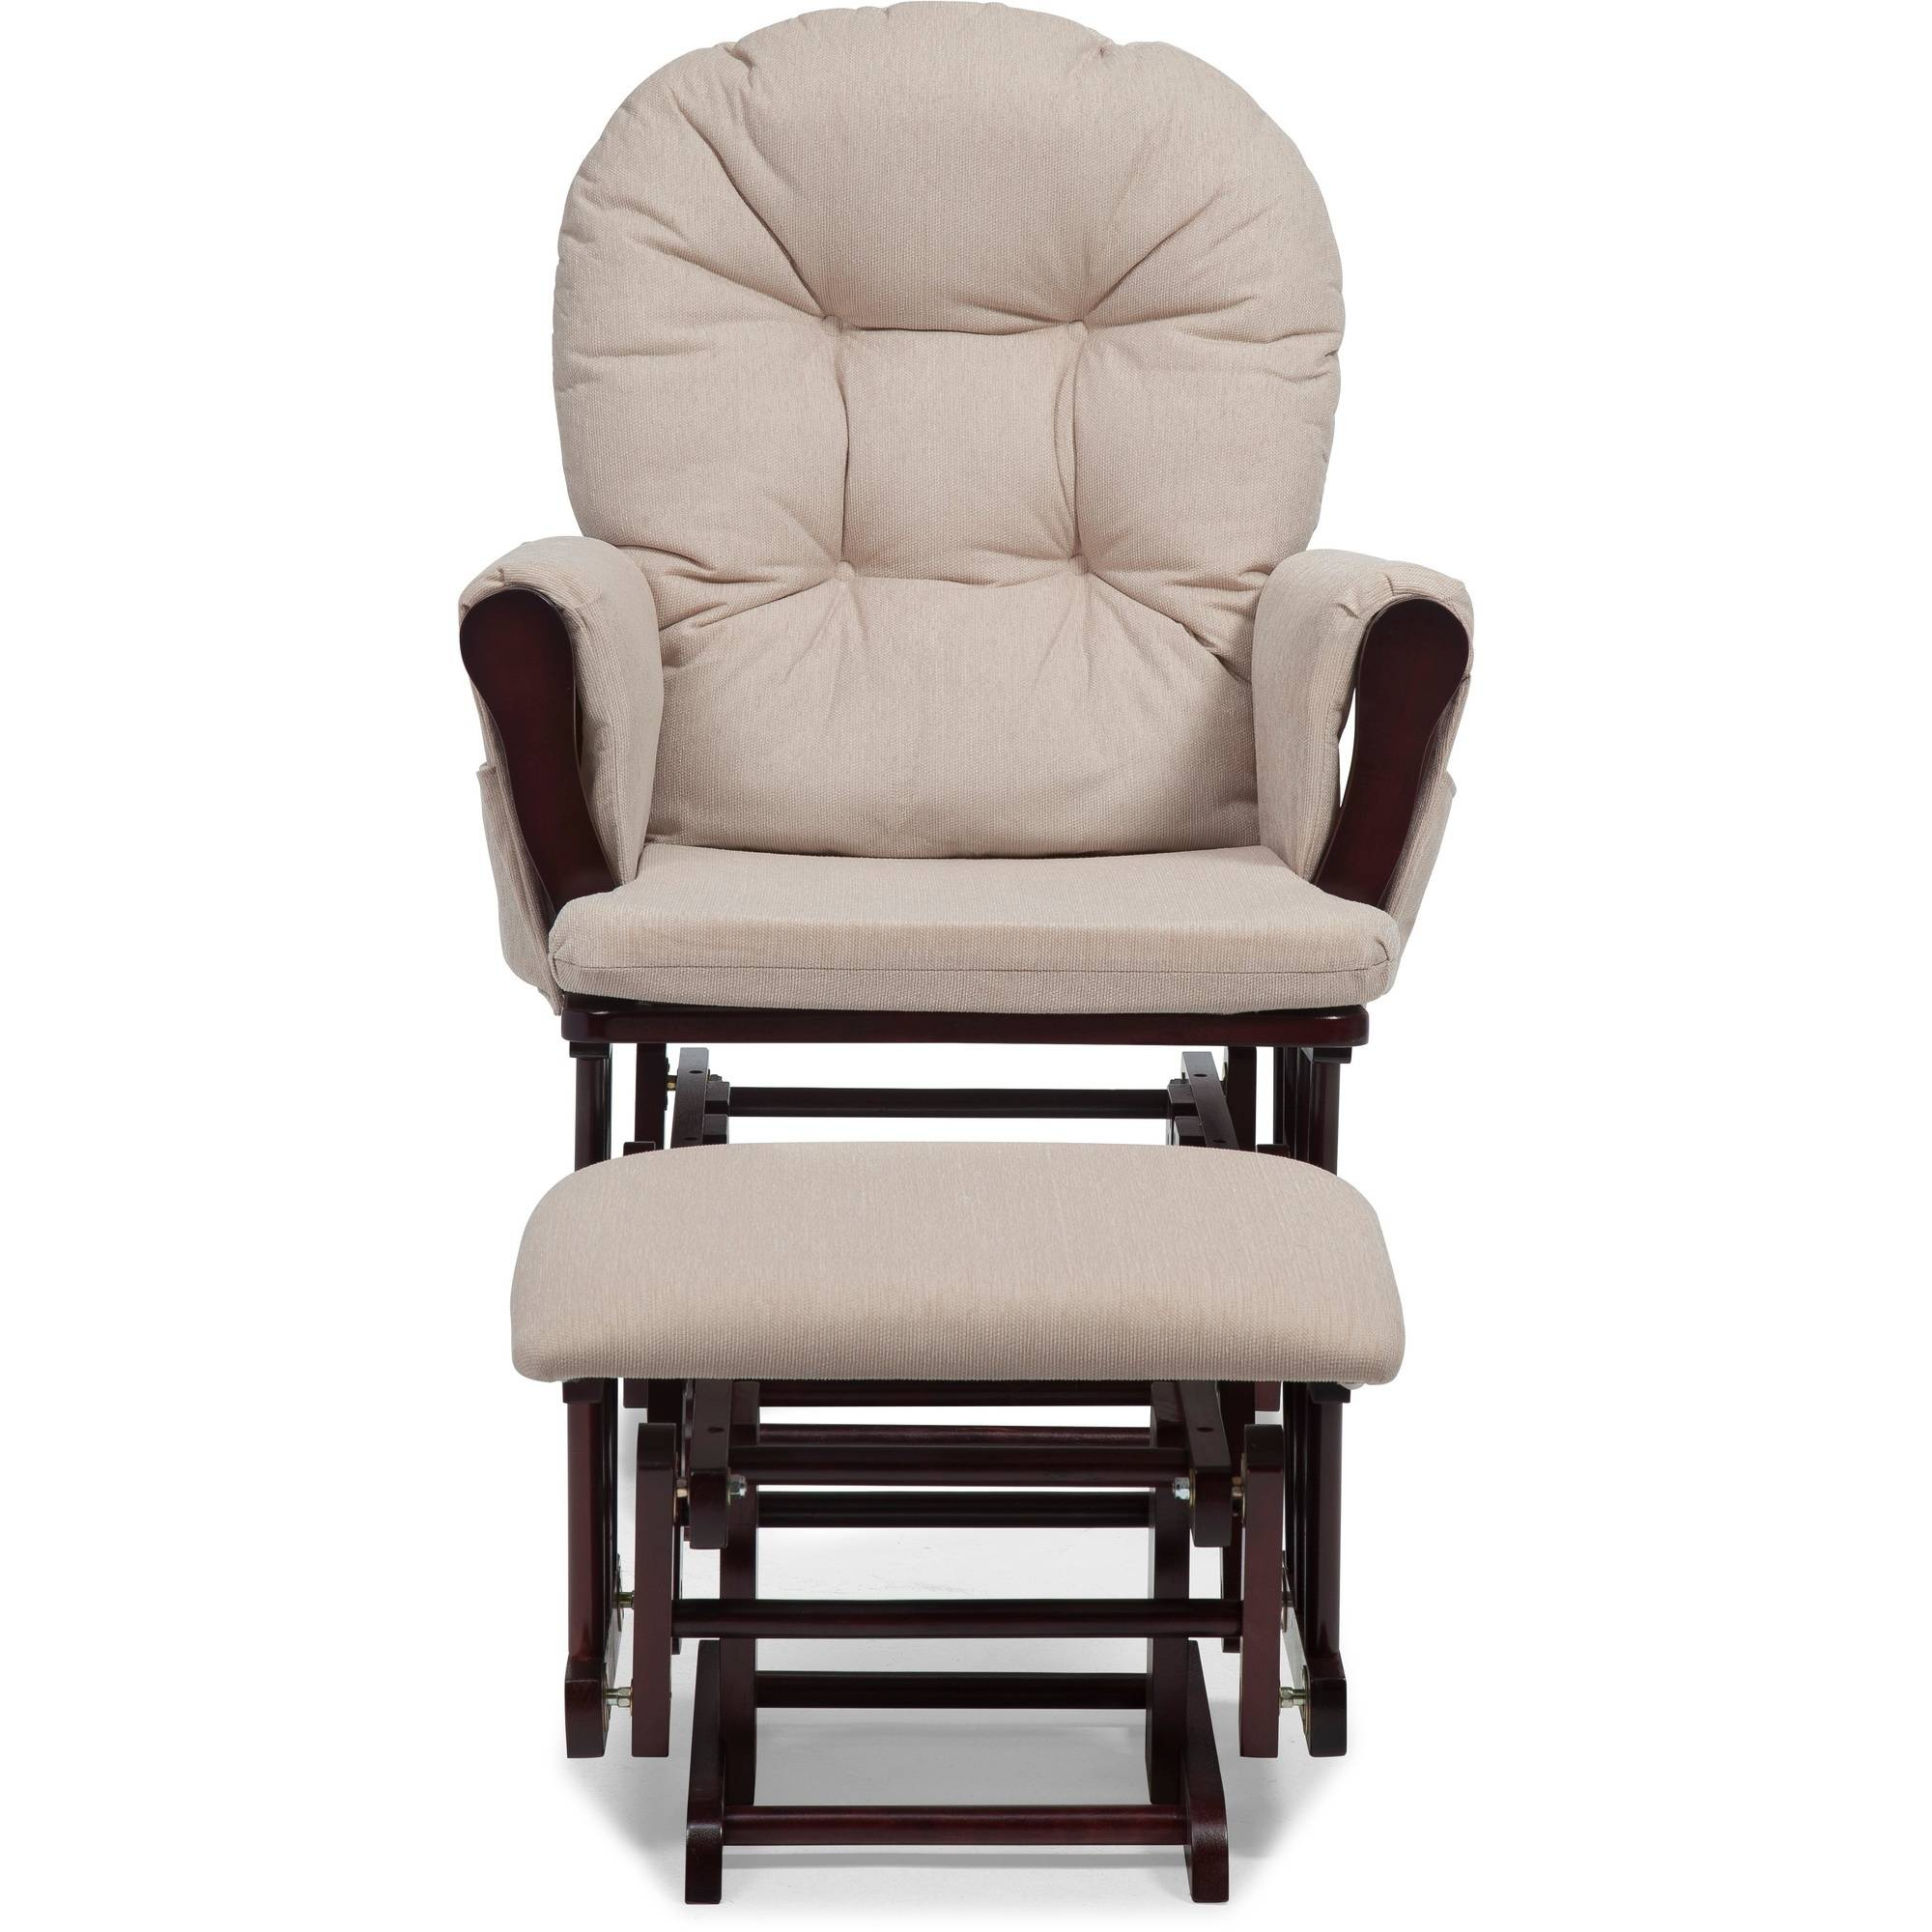 glider recliner chair with ottoman salon chairs ebay nursery baby set rocking wood